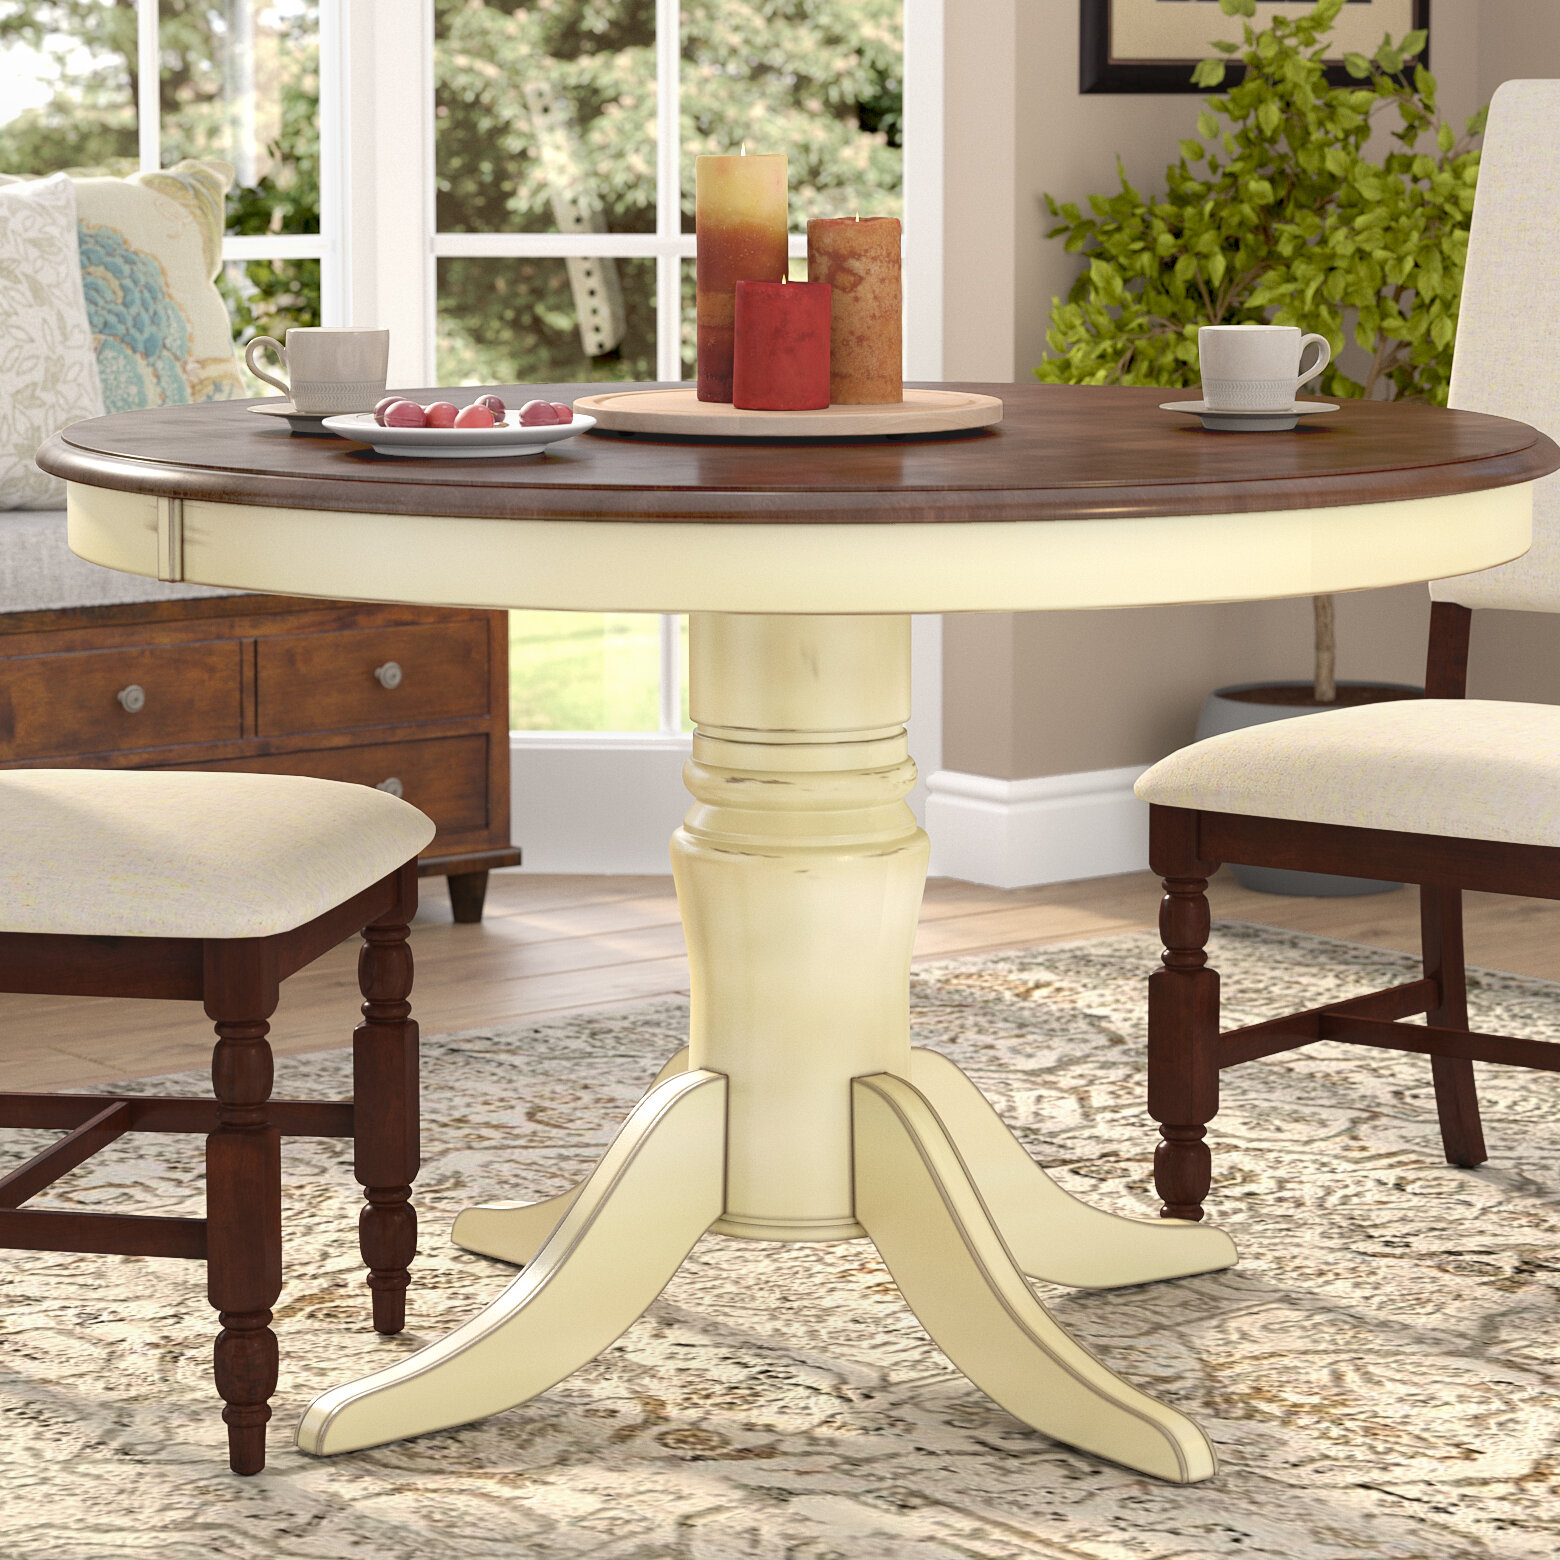 & Darby Home Co Scottville Dining Table u0026 Reviews | Wayfair